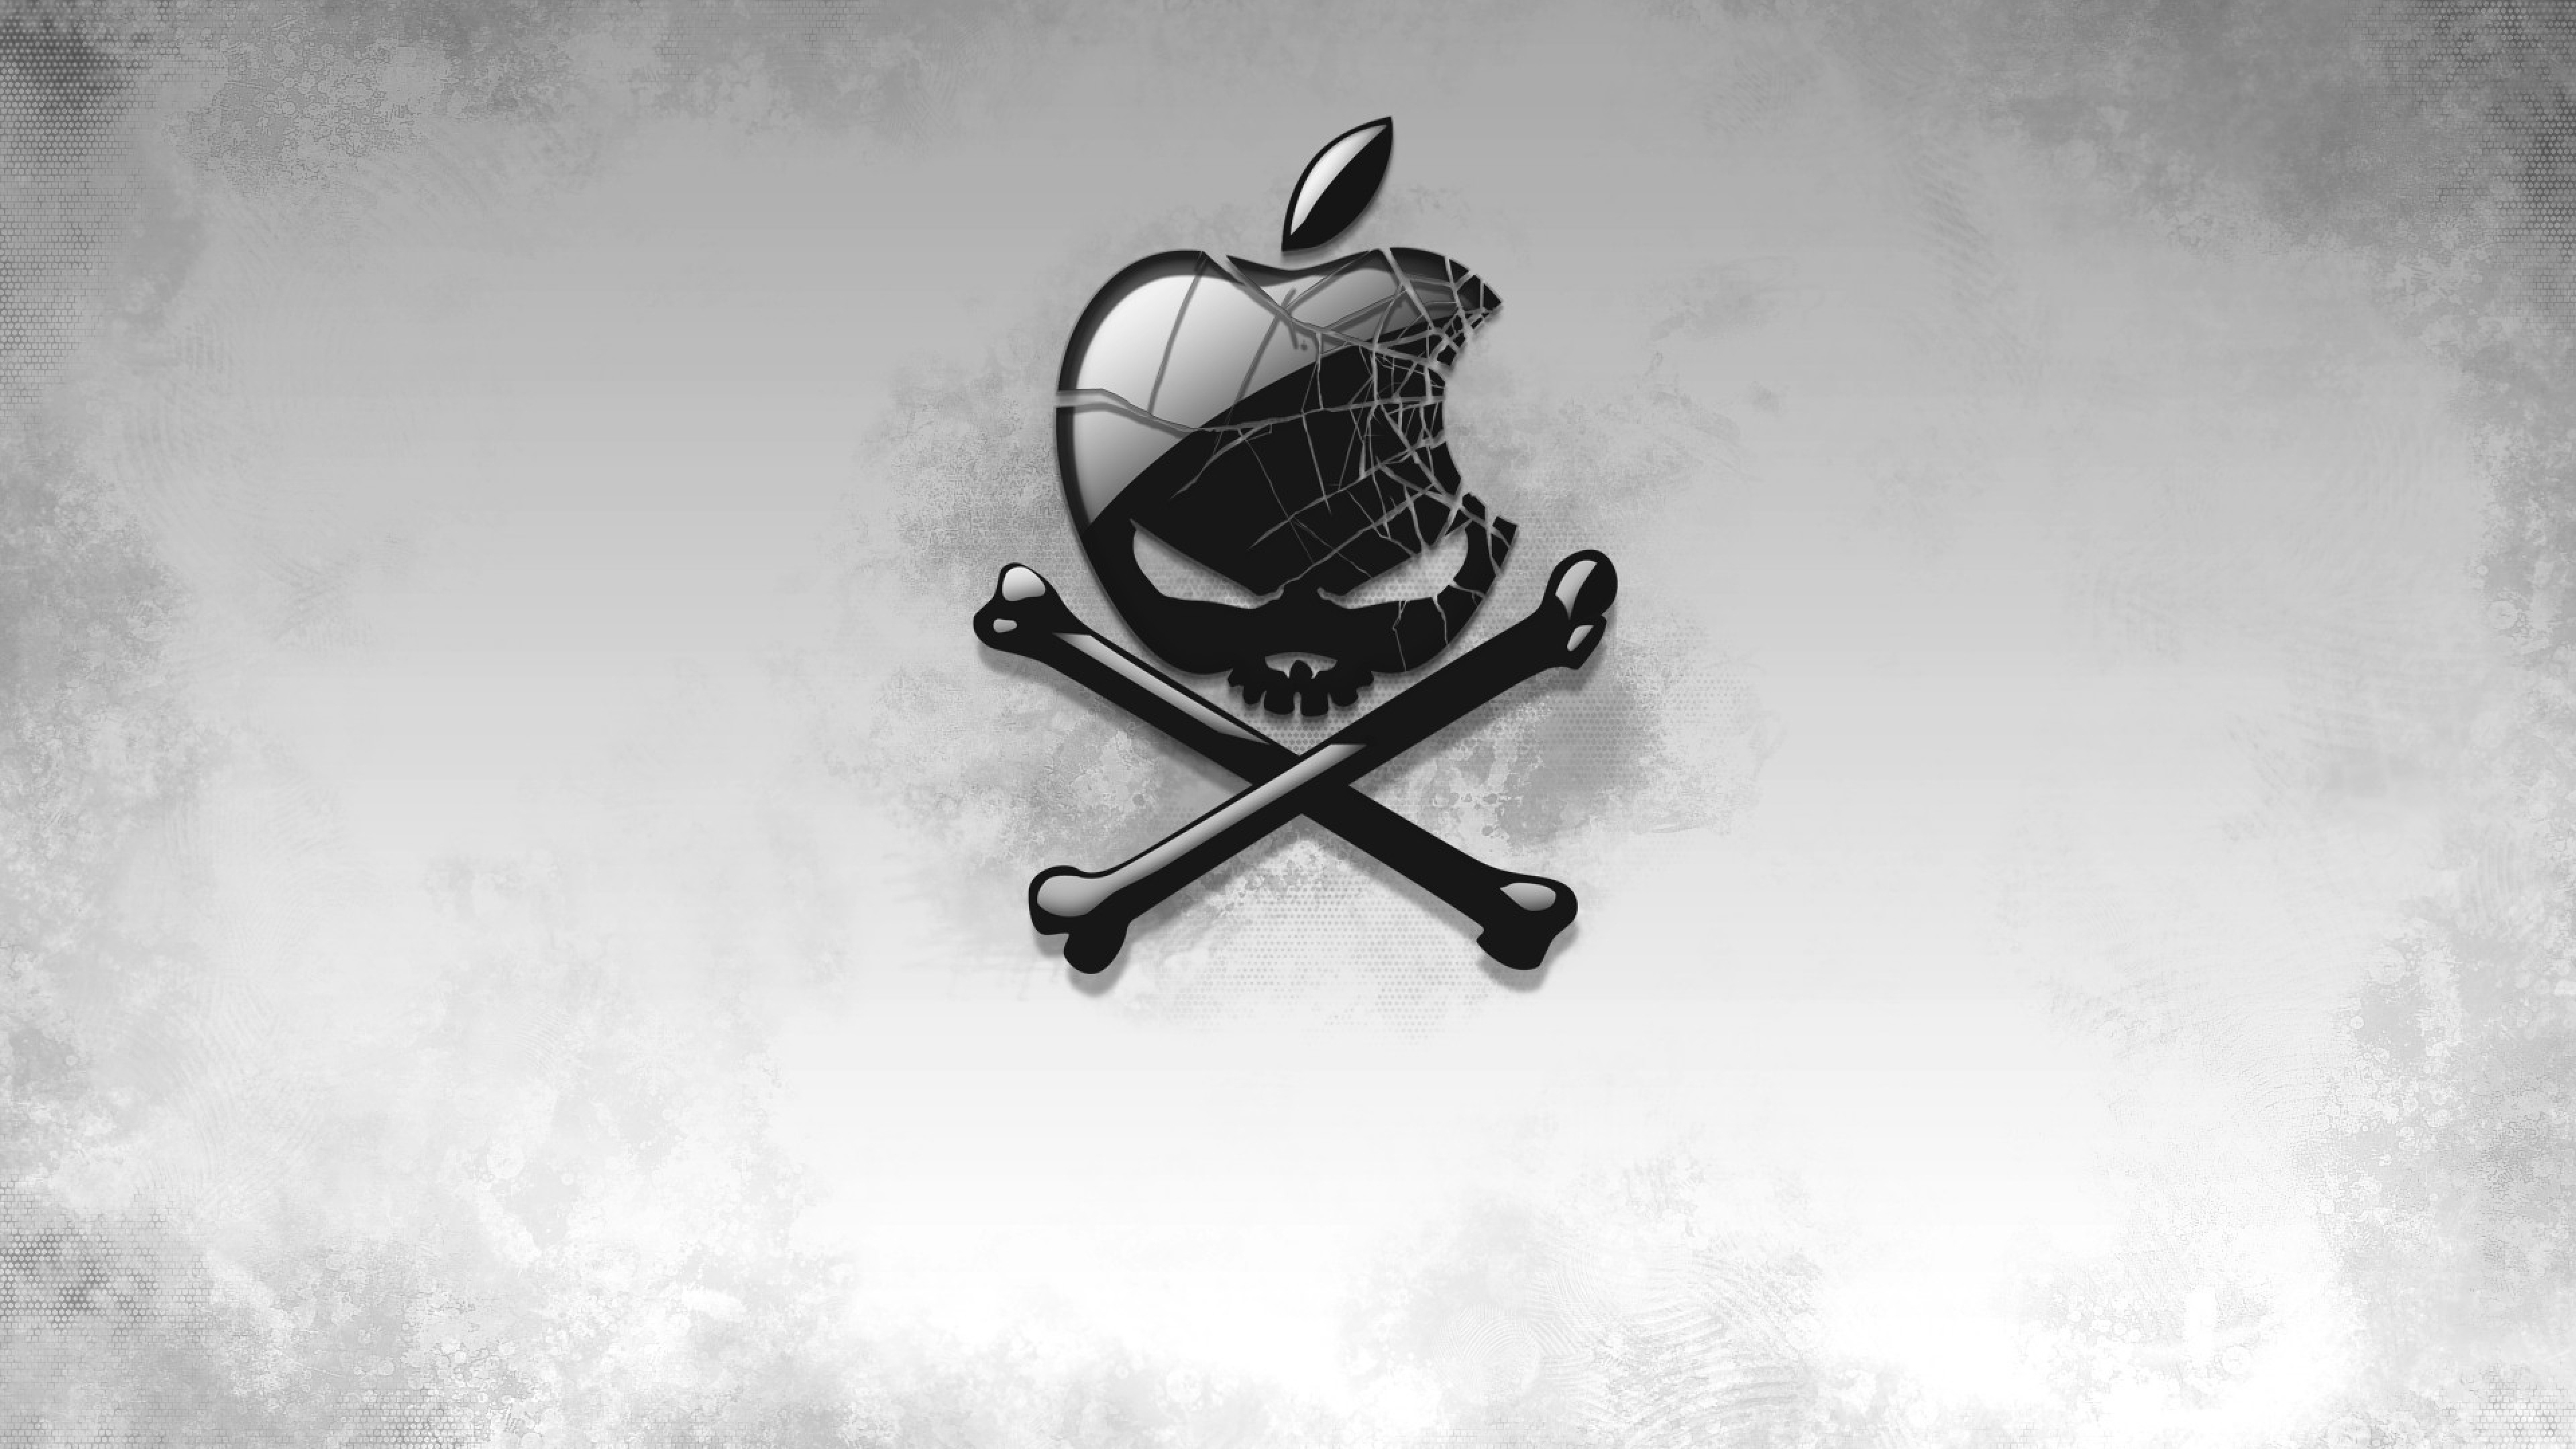 Black Apple Skull Hd Artist 4k Wallpapers Images Backgrounds